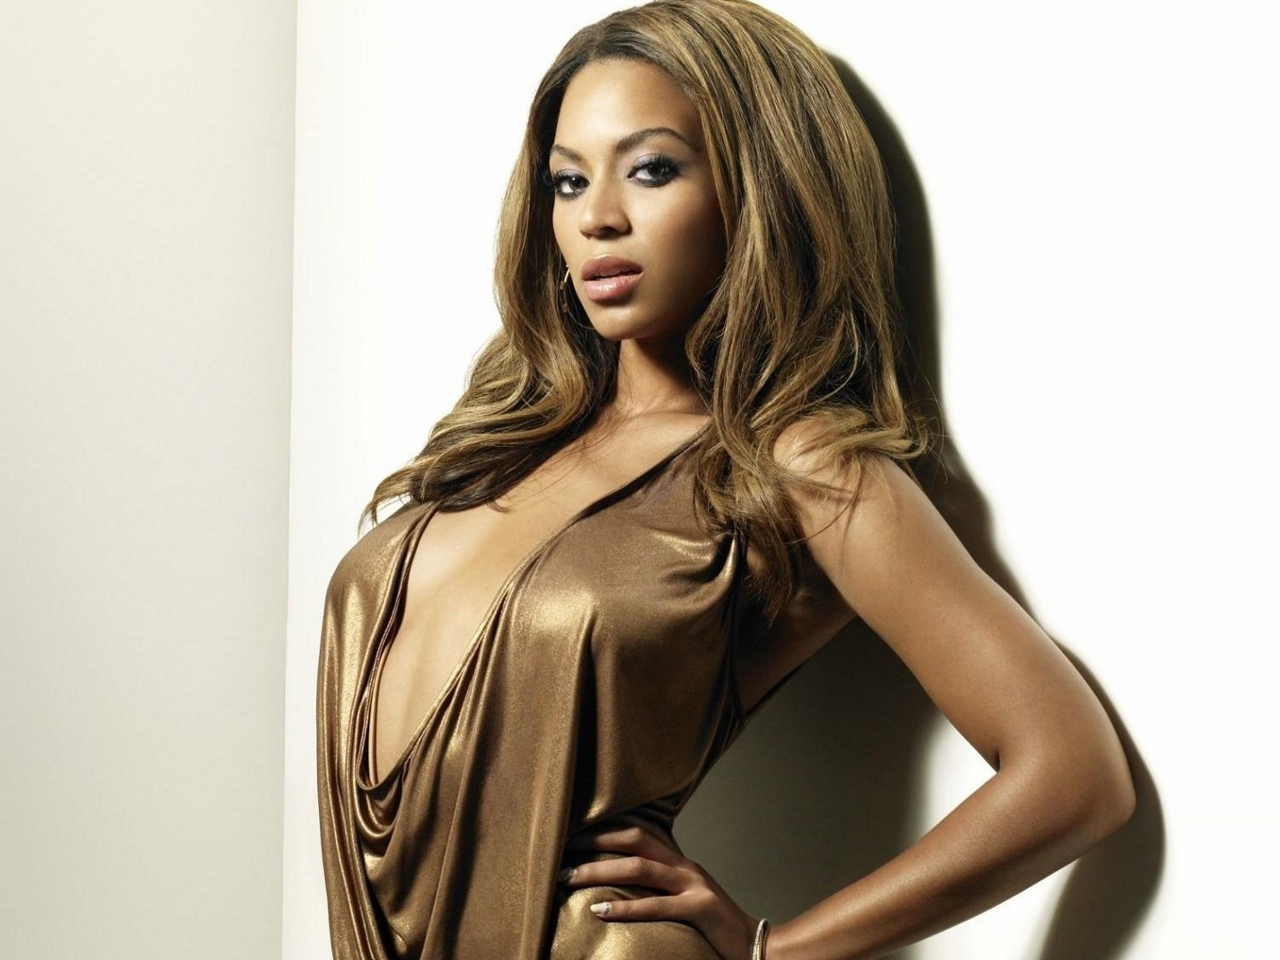 beyonce beyonce wallpaper 32688154 fanpop